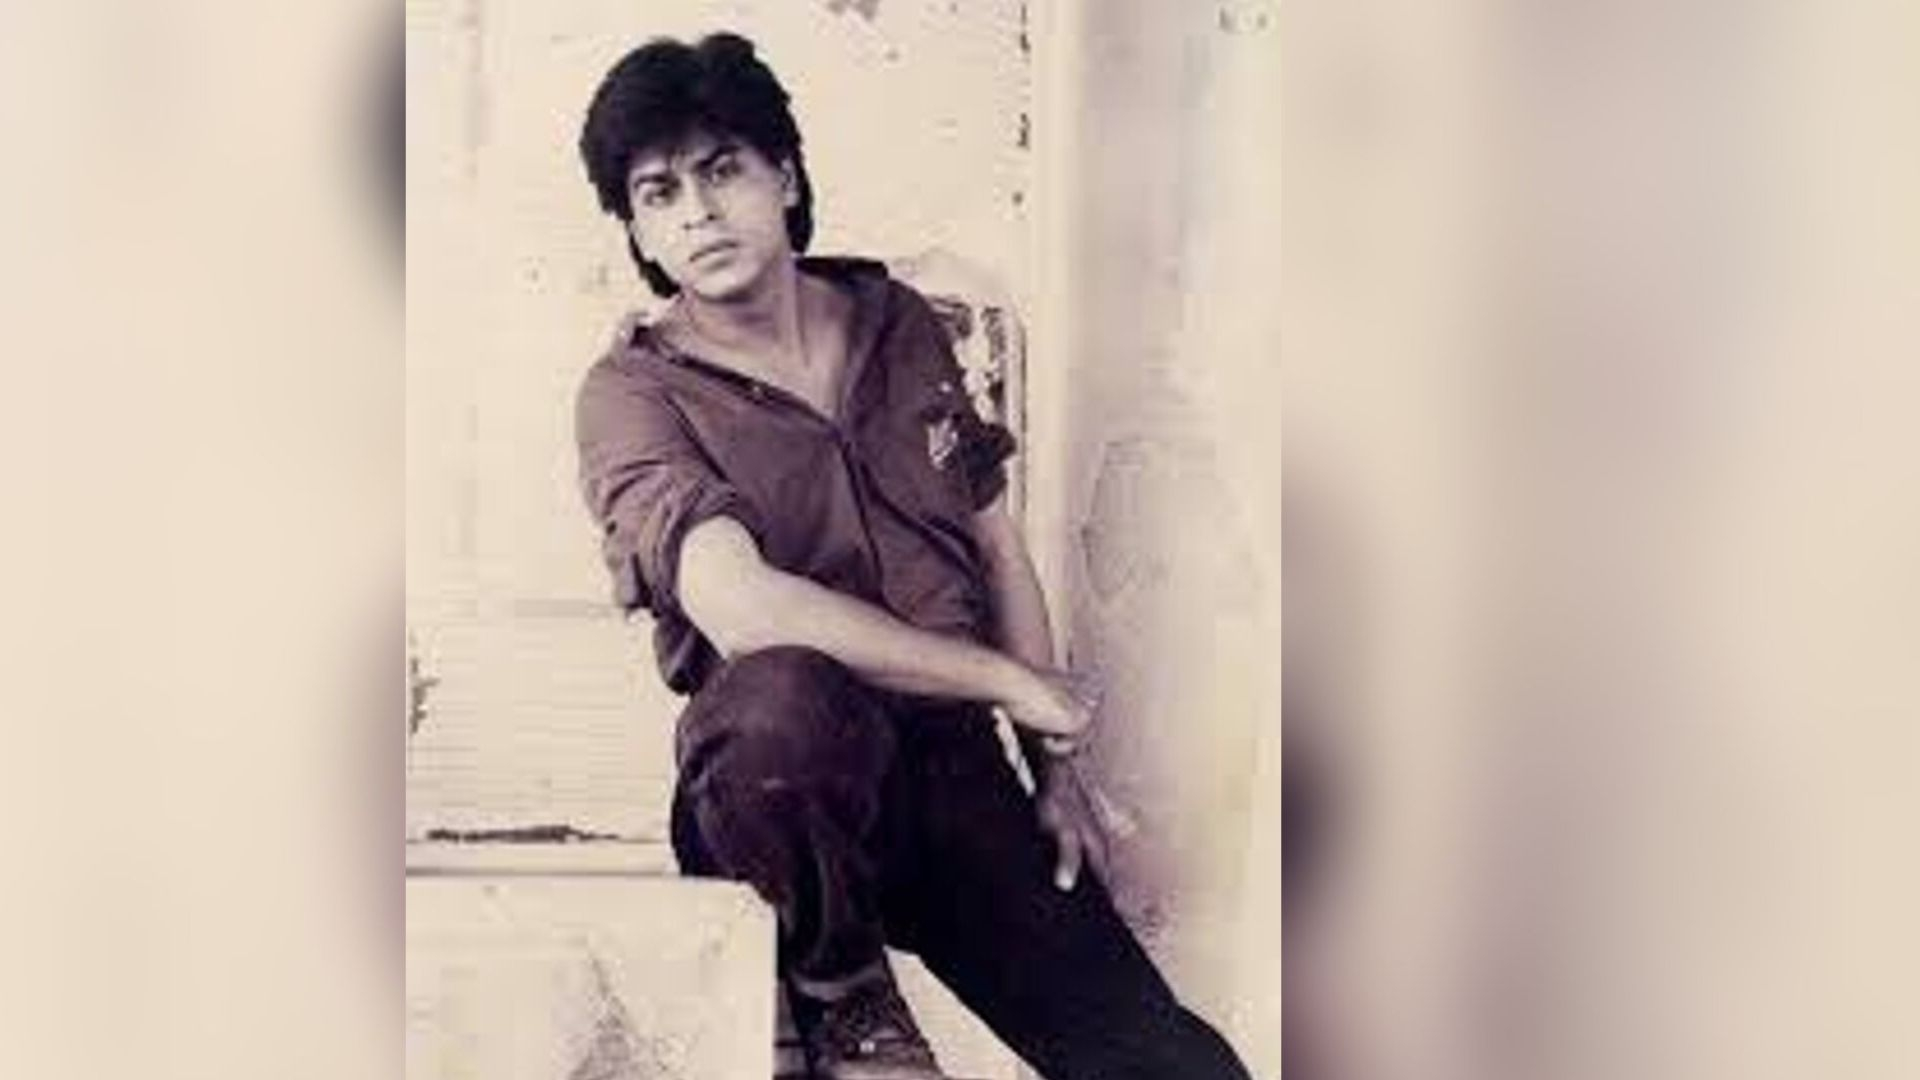 SRK Introduces Kumar Sanu in This Throwback Video From His TV Days